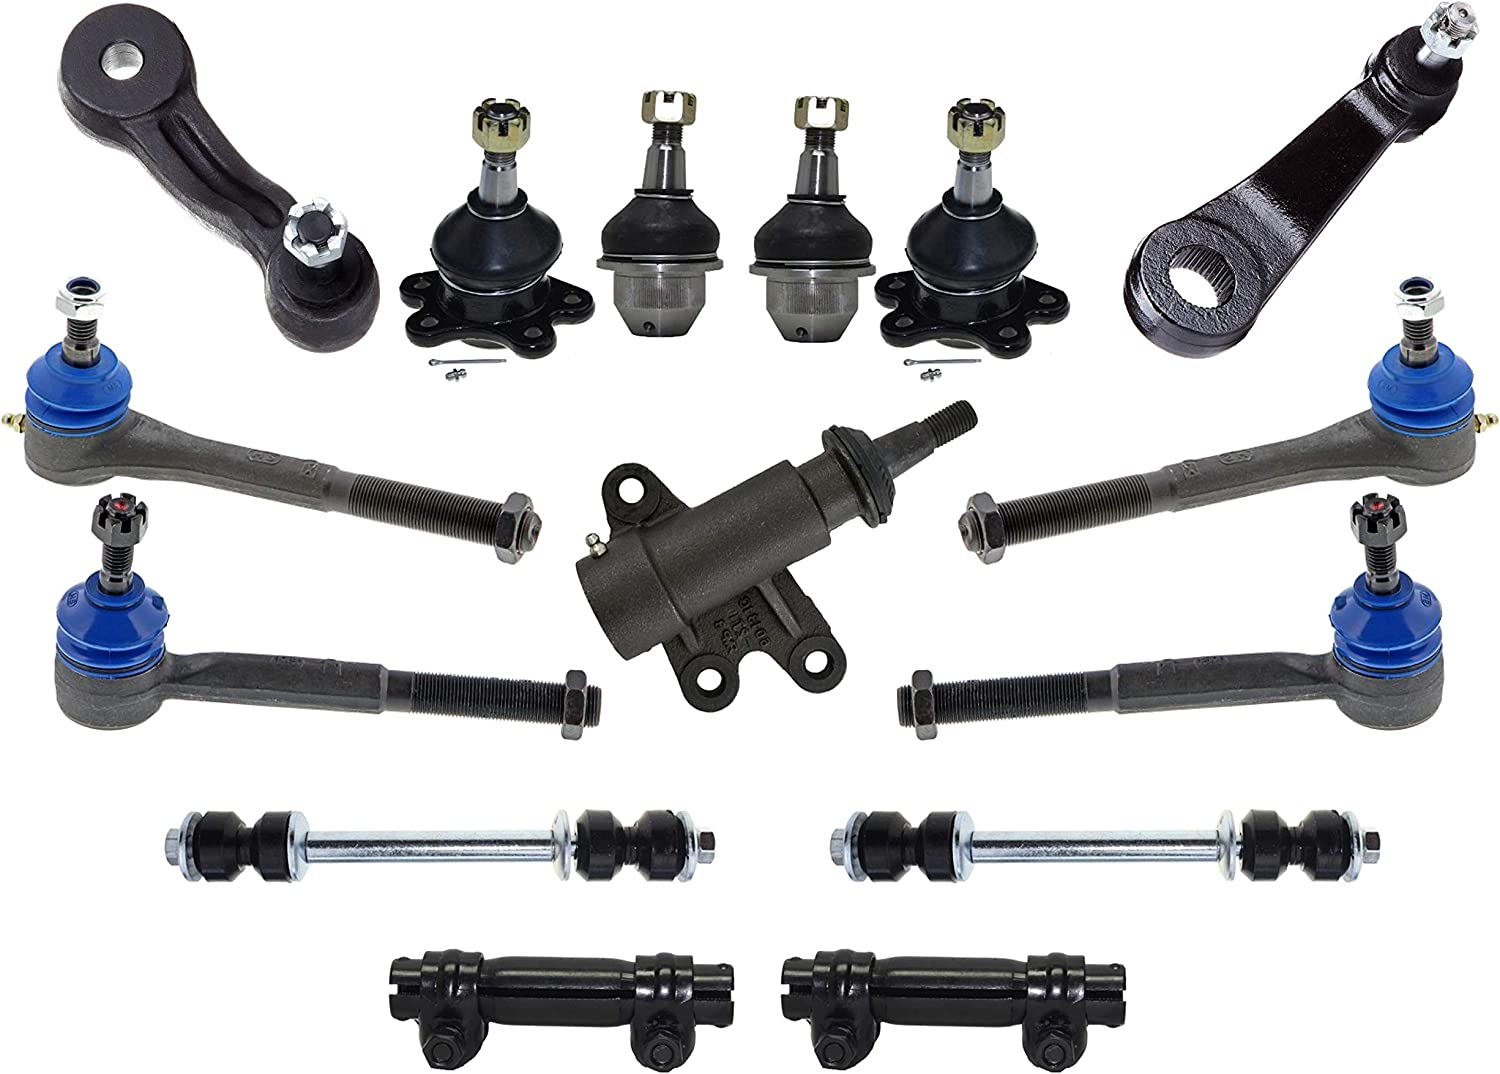 PartsW 15 Piece Suspension /& Steering Tie Rod Adjusting Sleeves Idler /& Pitman Arm Ball Joints Kit for CADILLAC CHEVROLET GMC